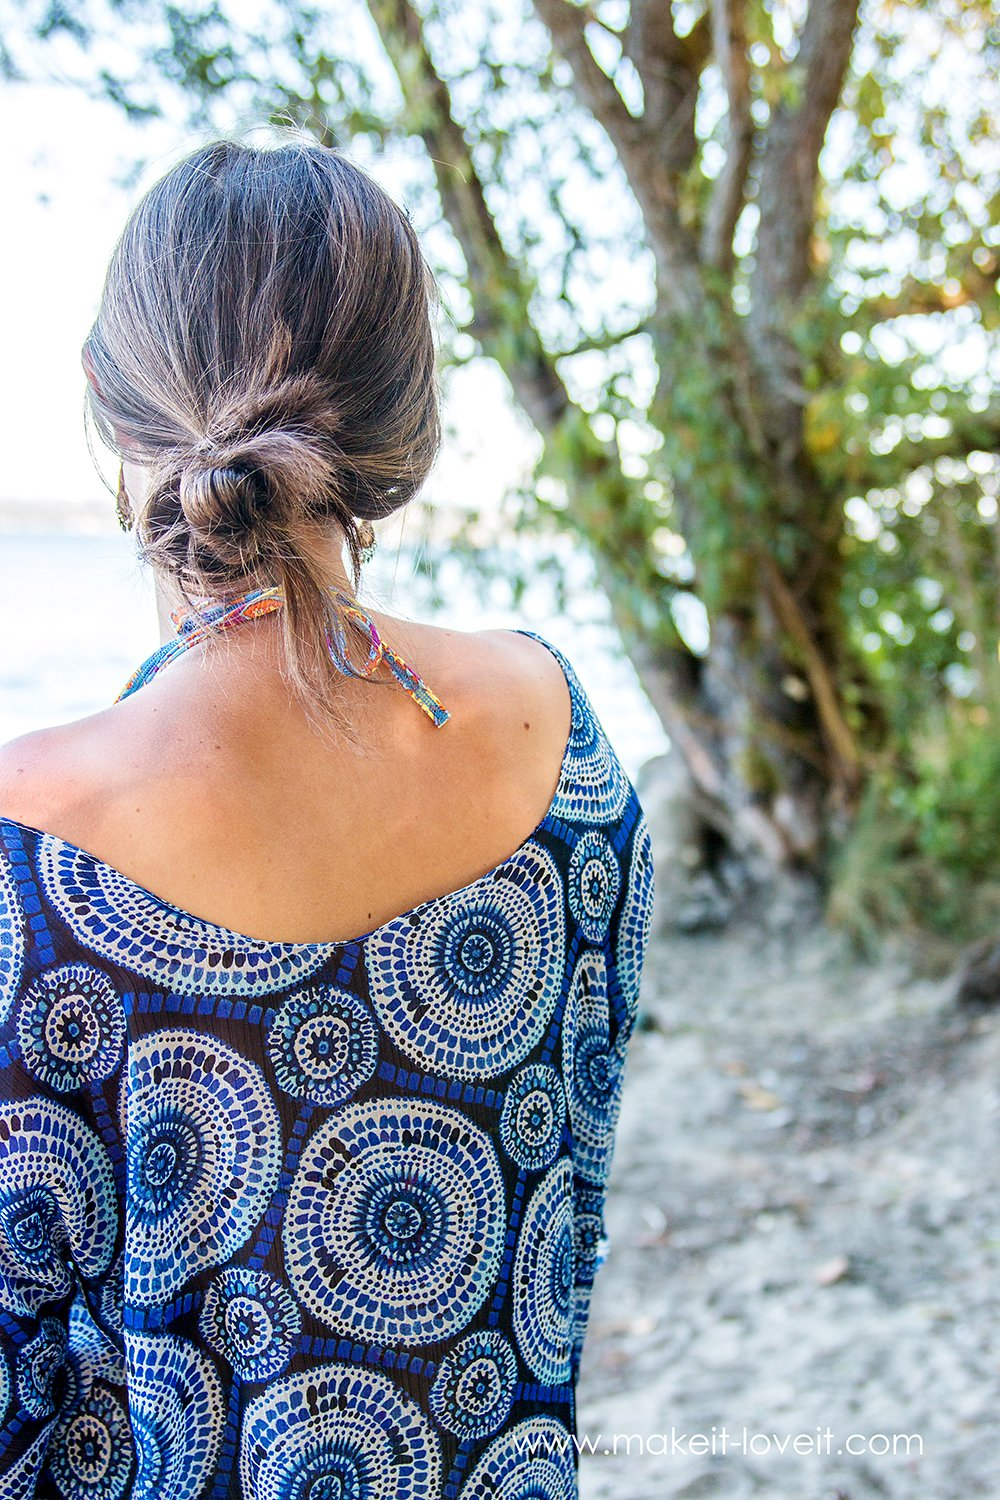 a simple Women's Beach Cover Up Tutorial...free PDF pattern pieces included! | via Make It and Love It